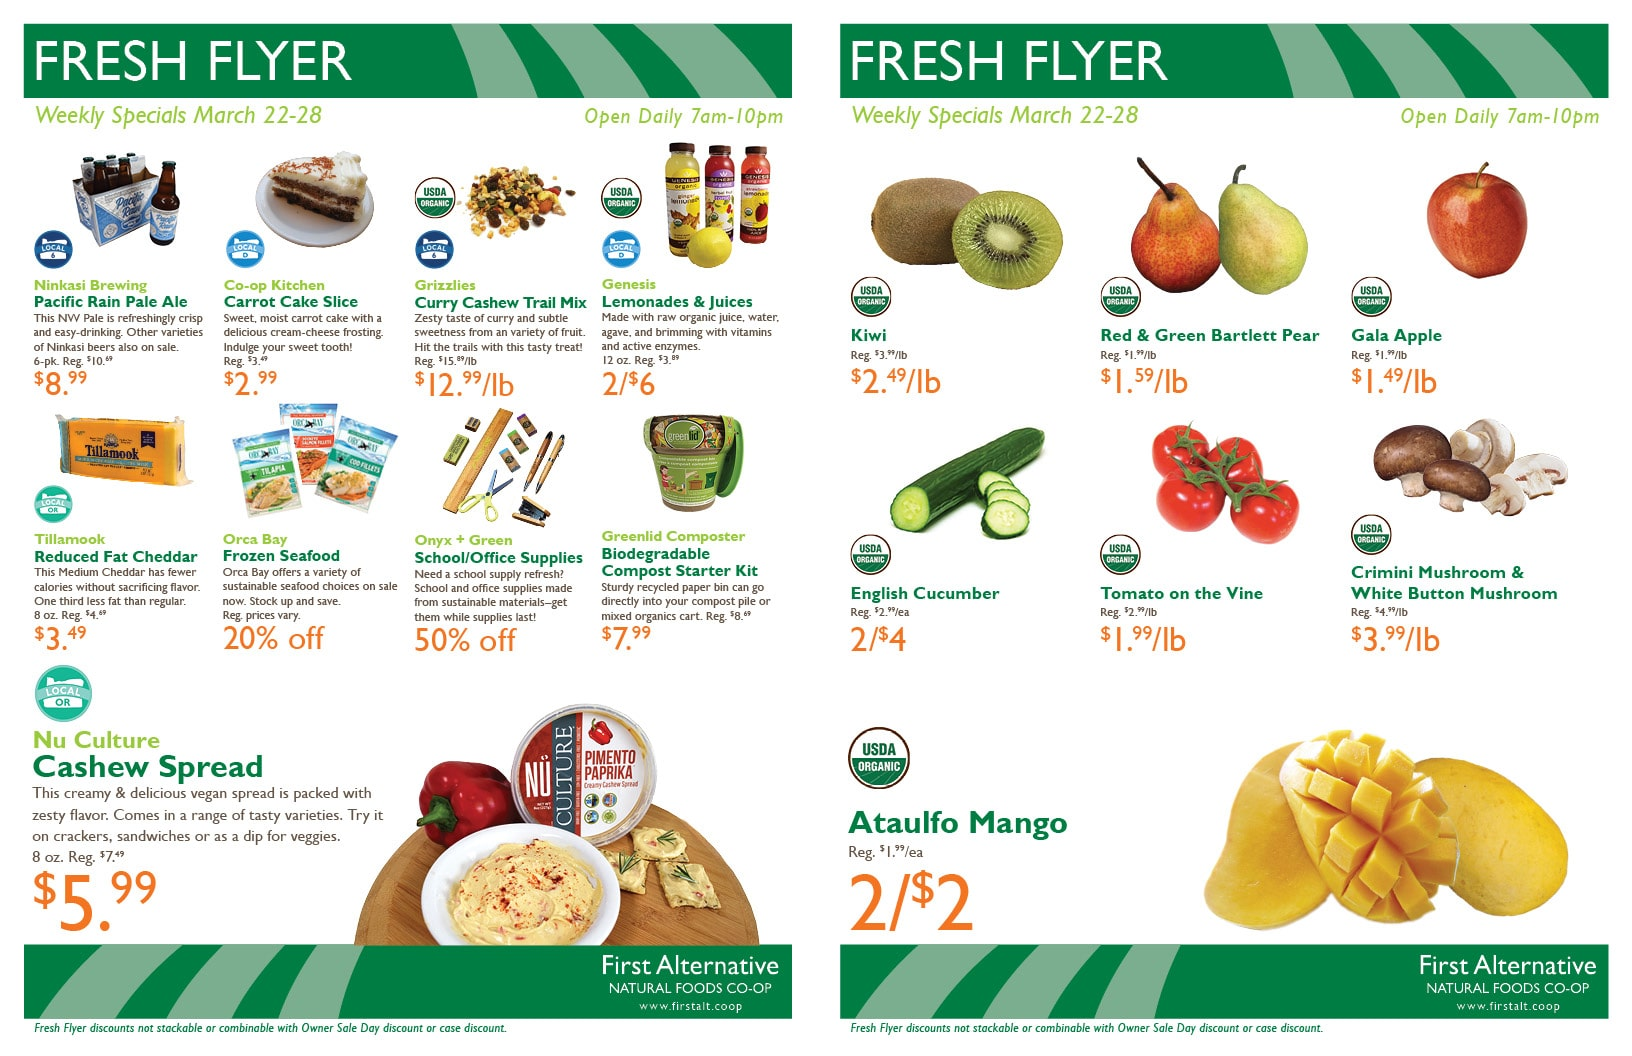 First Alternative Co-op Fresh Flyer Mar. 22-28